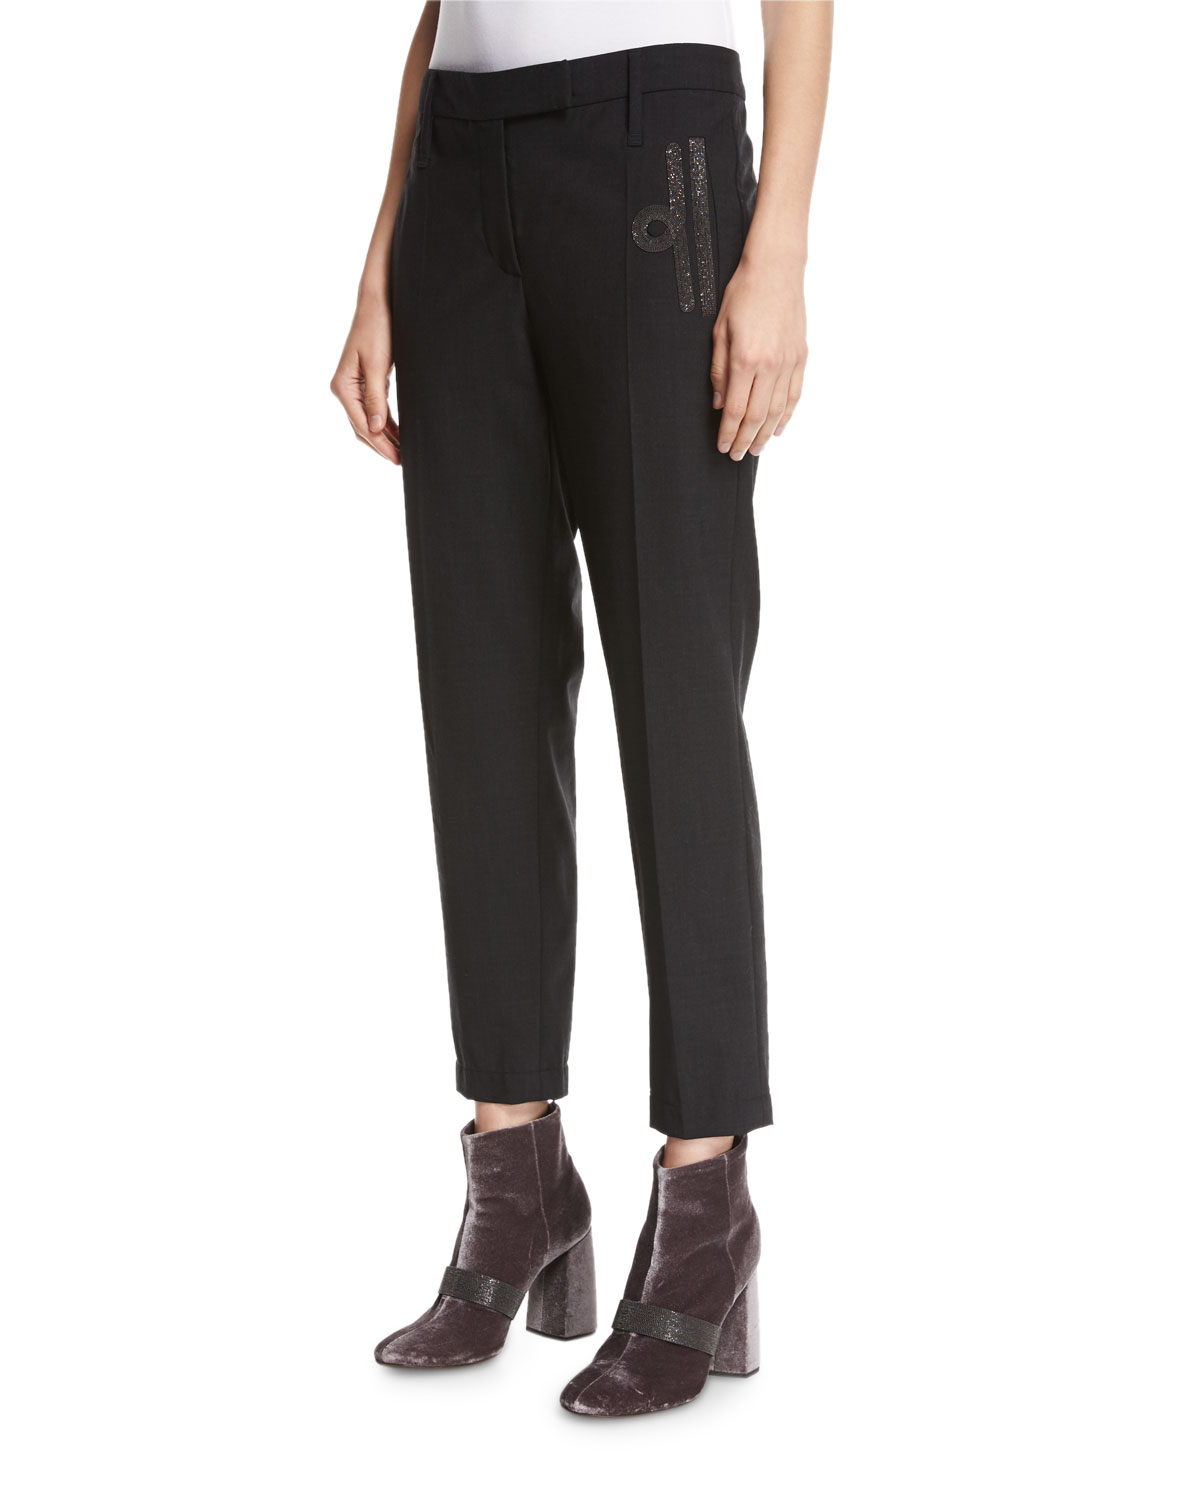 Cropped wool-blend trousers Brunello Cucinelli High Quality Online Sale Pay With Paypal Outlet Sast The Cheapest Cheap Price Best Selling Mrt9N